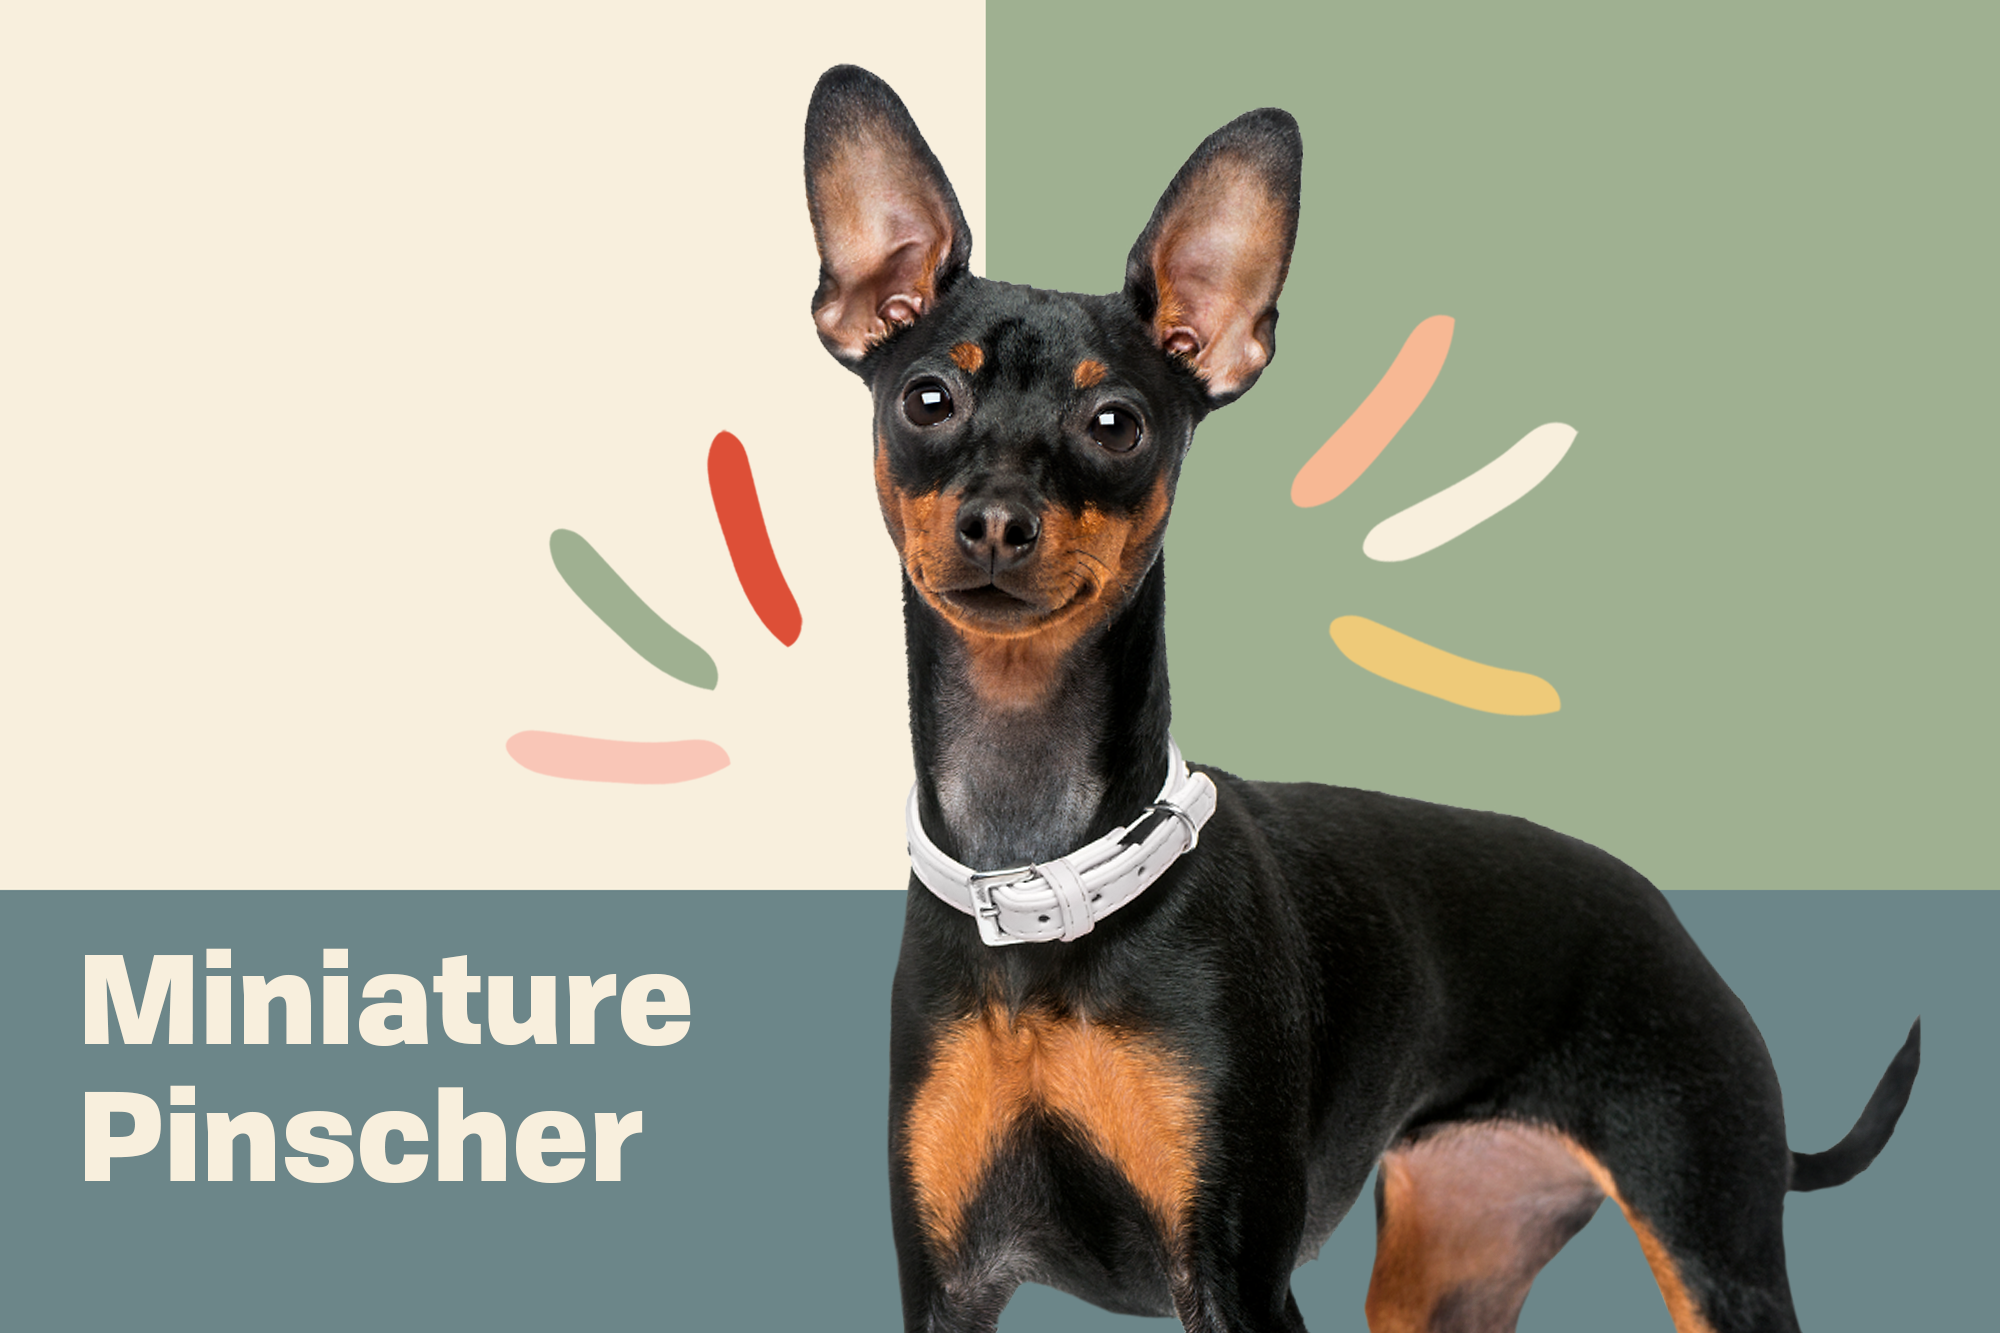 Miniature Pinscher Breed Photo